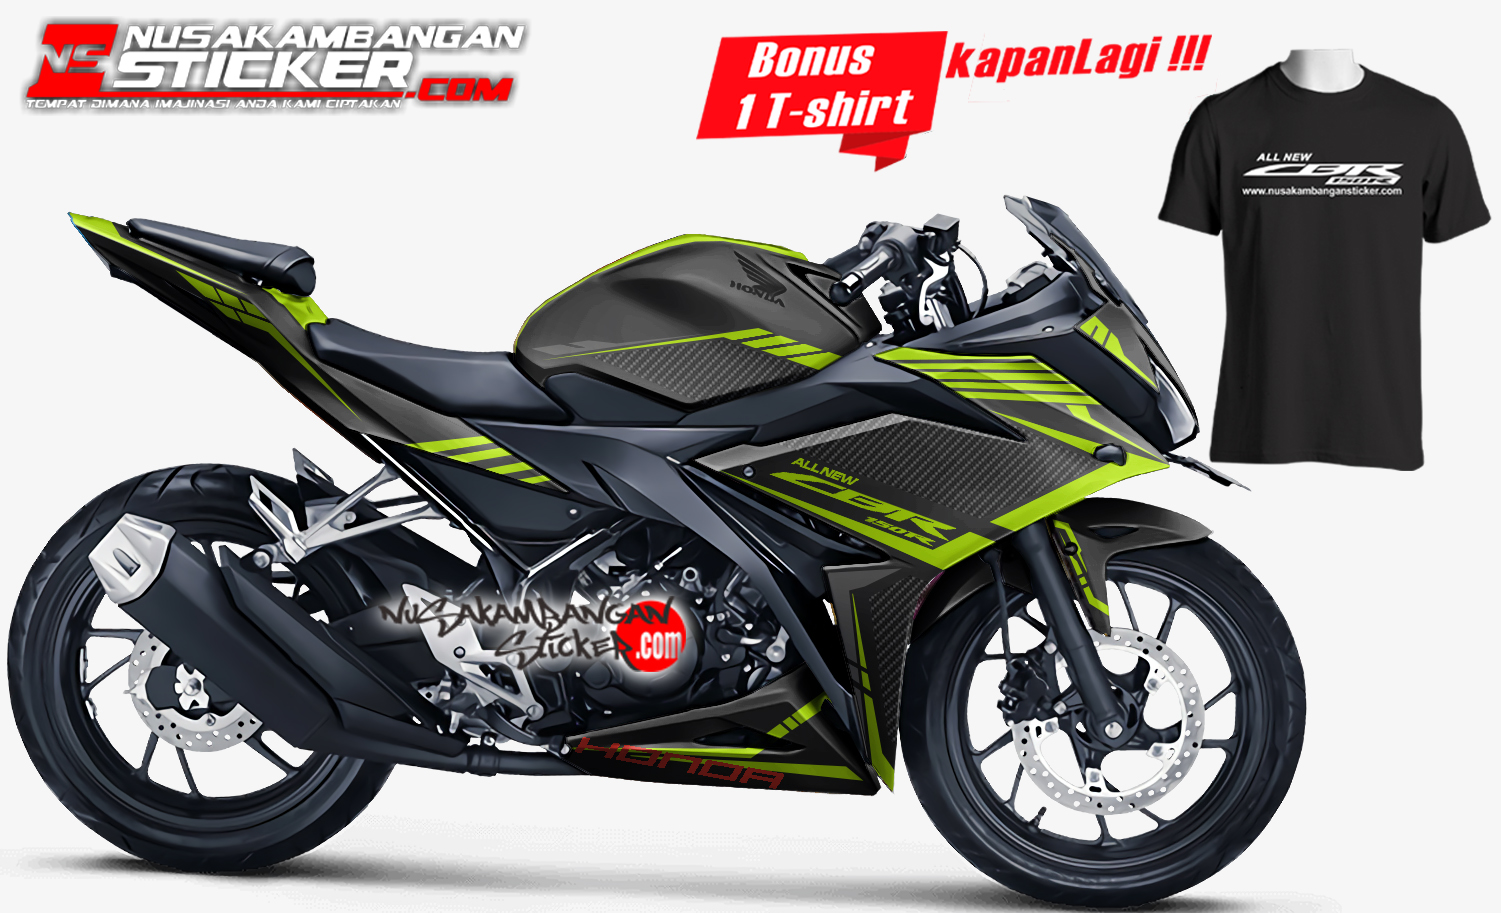 Decal Stiker CBR 150 R All New Karbon Grafis Hijau Nusakambangan Sticker